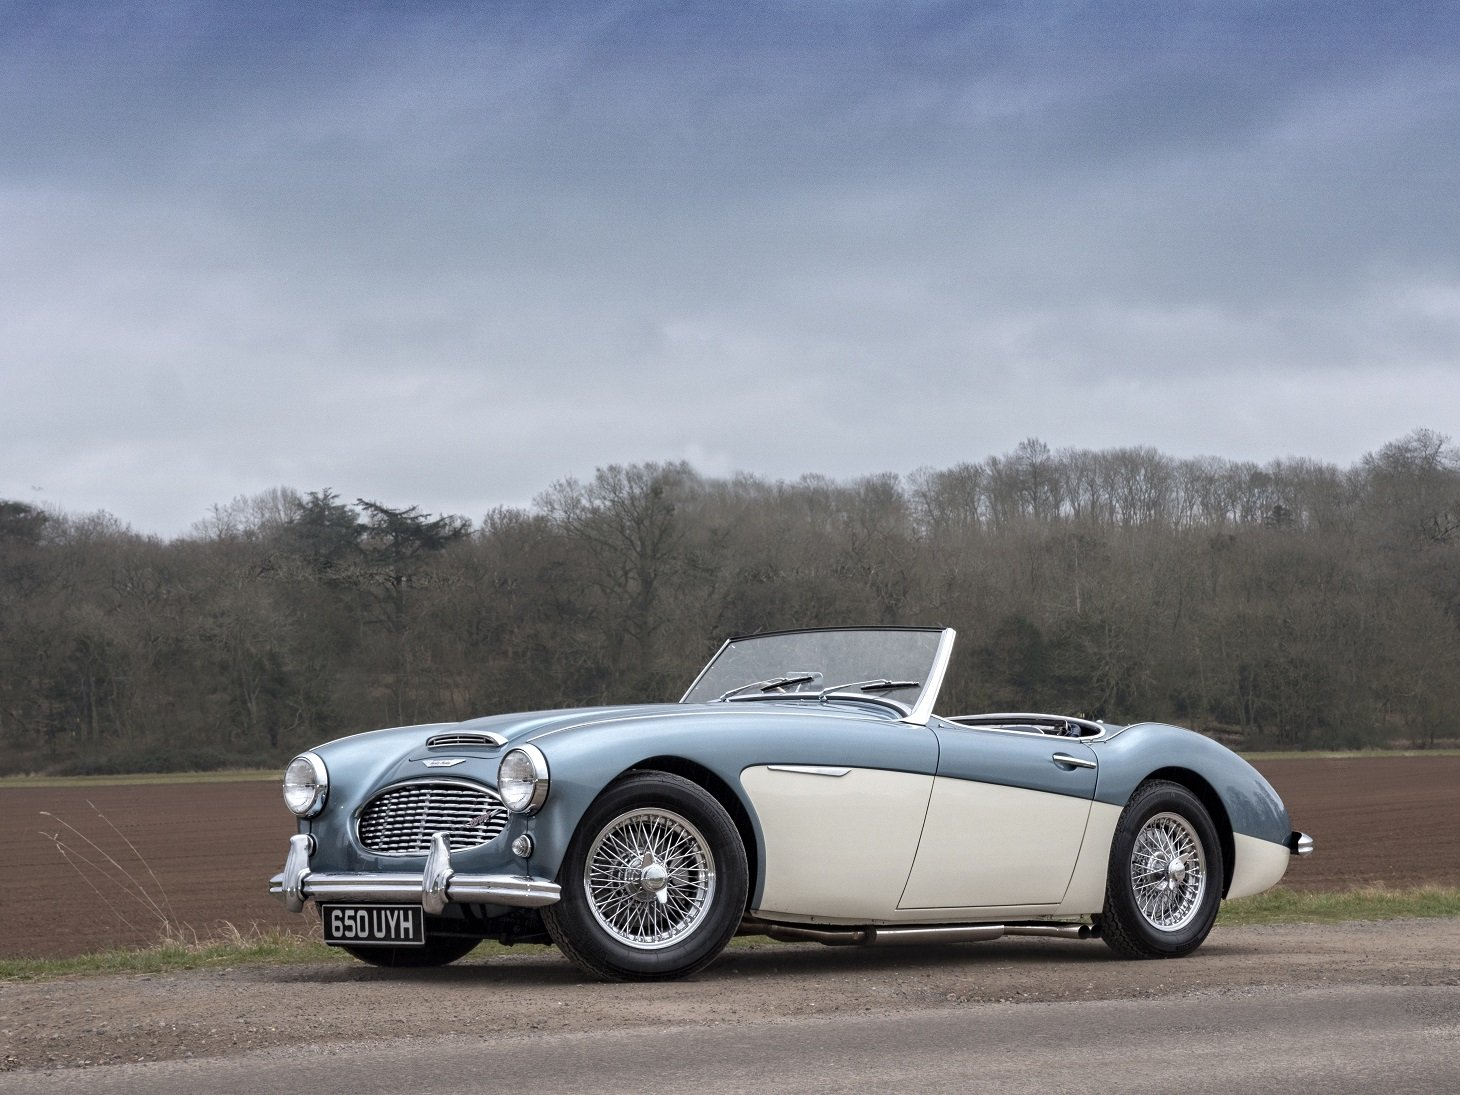 1959 Austin Healey 3000 MKI BN7 2-Seater For Sale (picture 1 of 6)